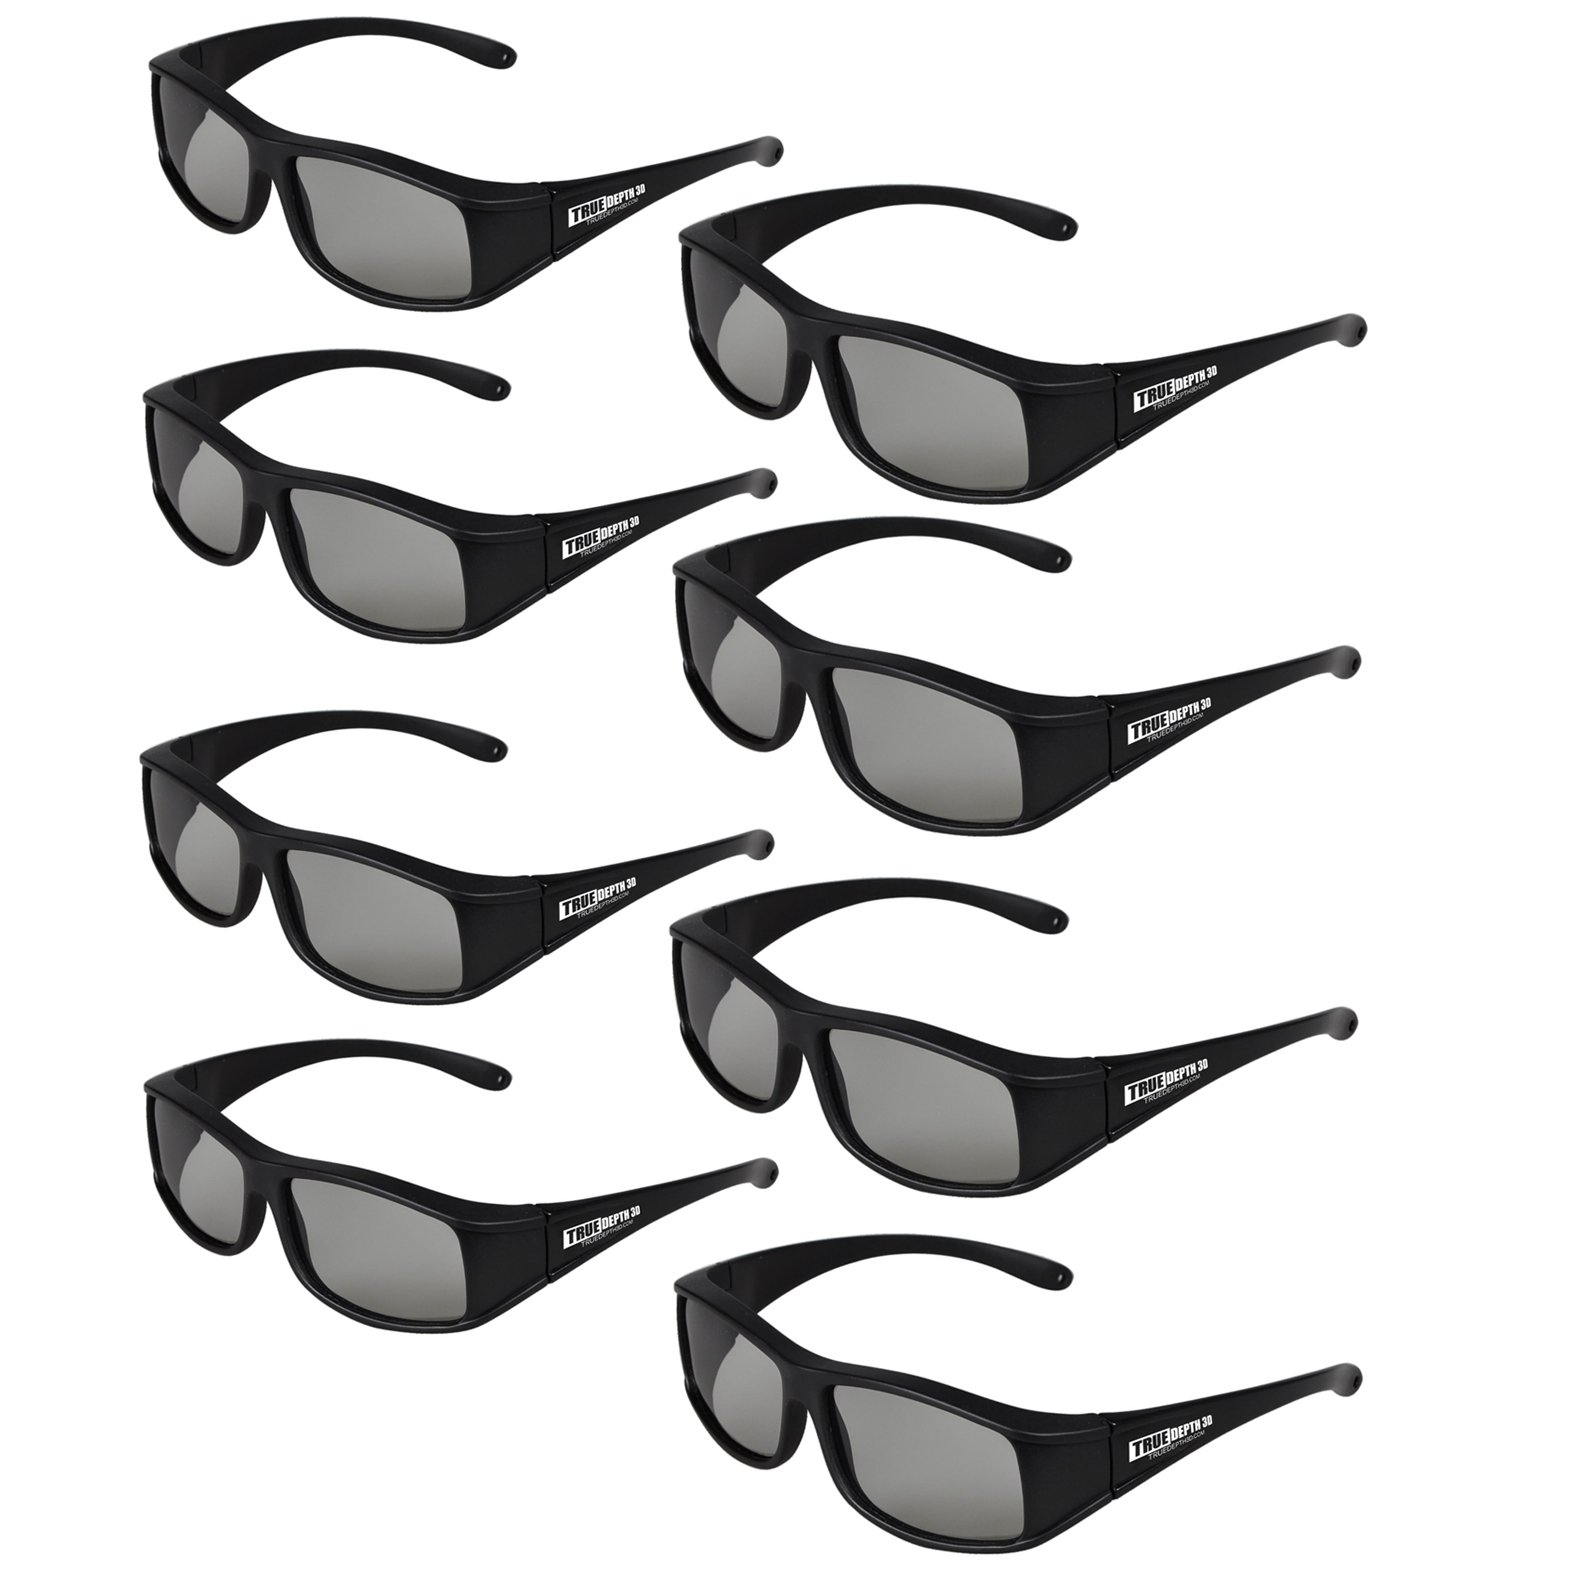 True Depth 3D® Circular Polarized Glasses for Passive Vizio 3D TVs (8 Pairs!)